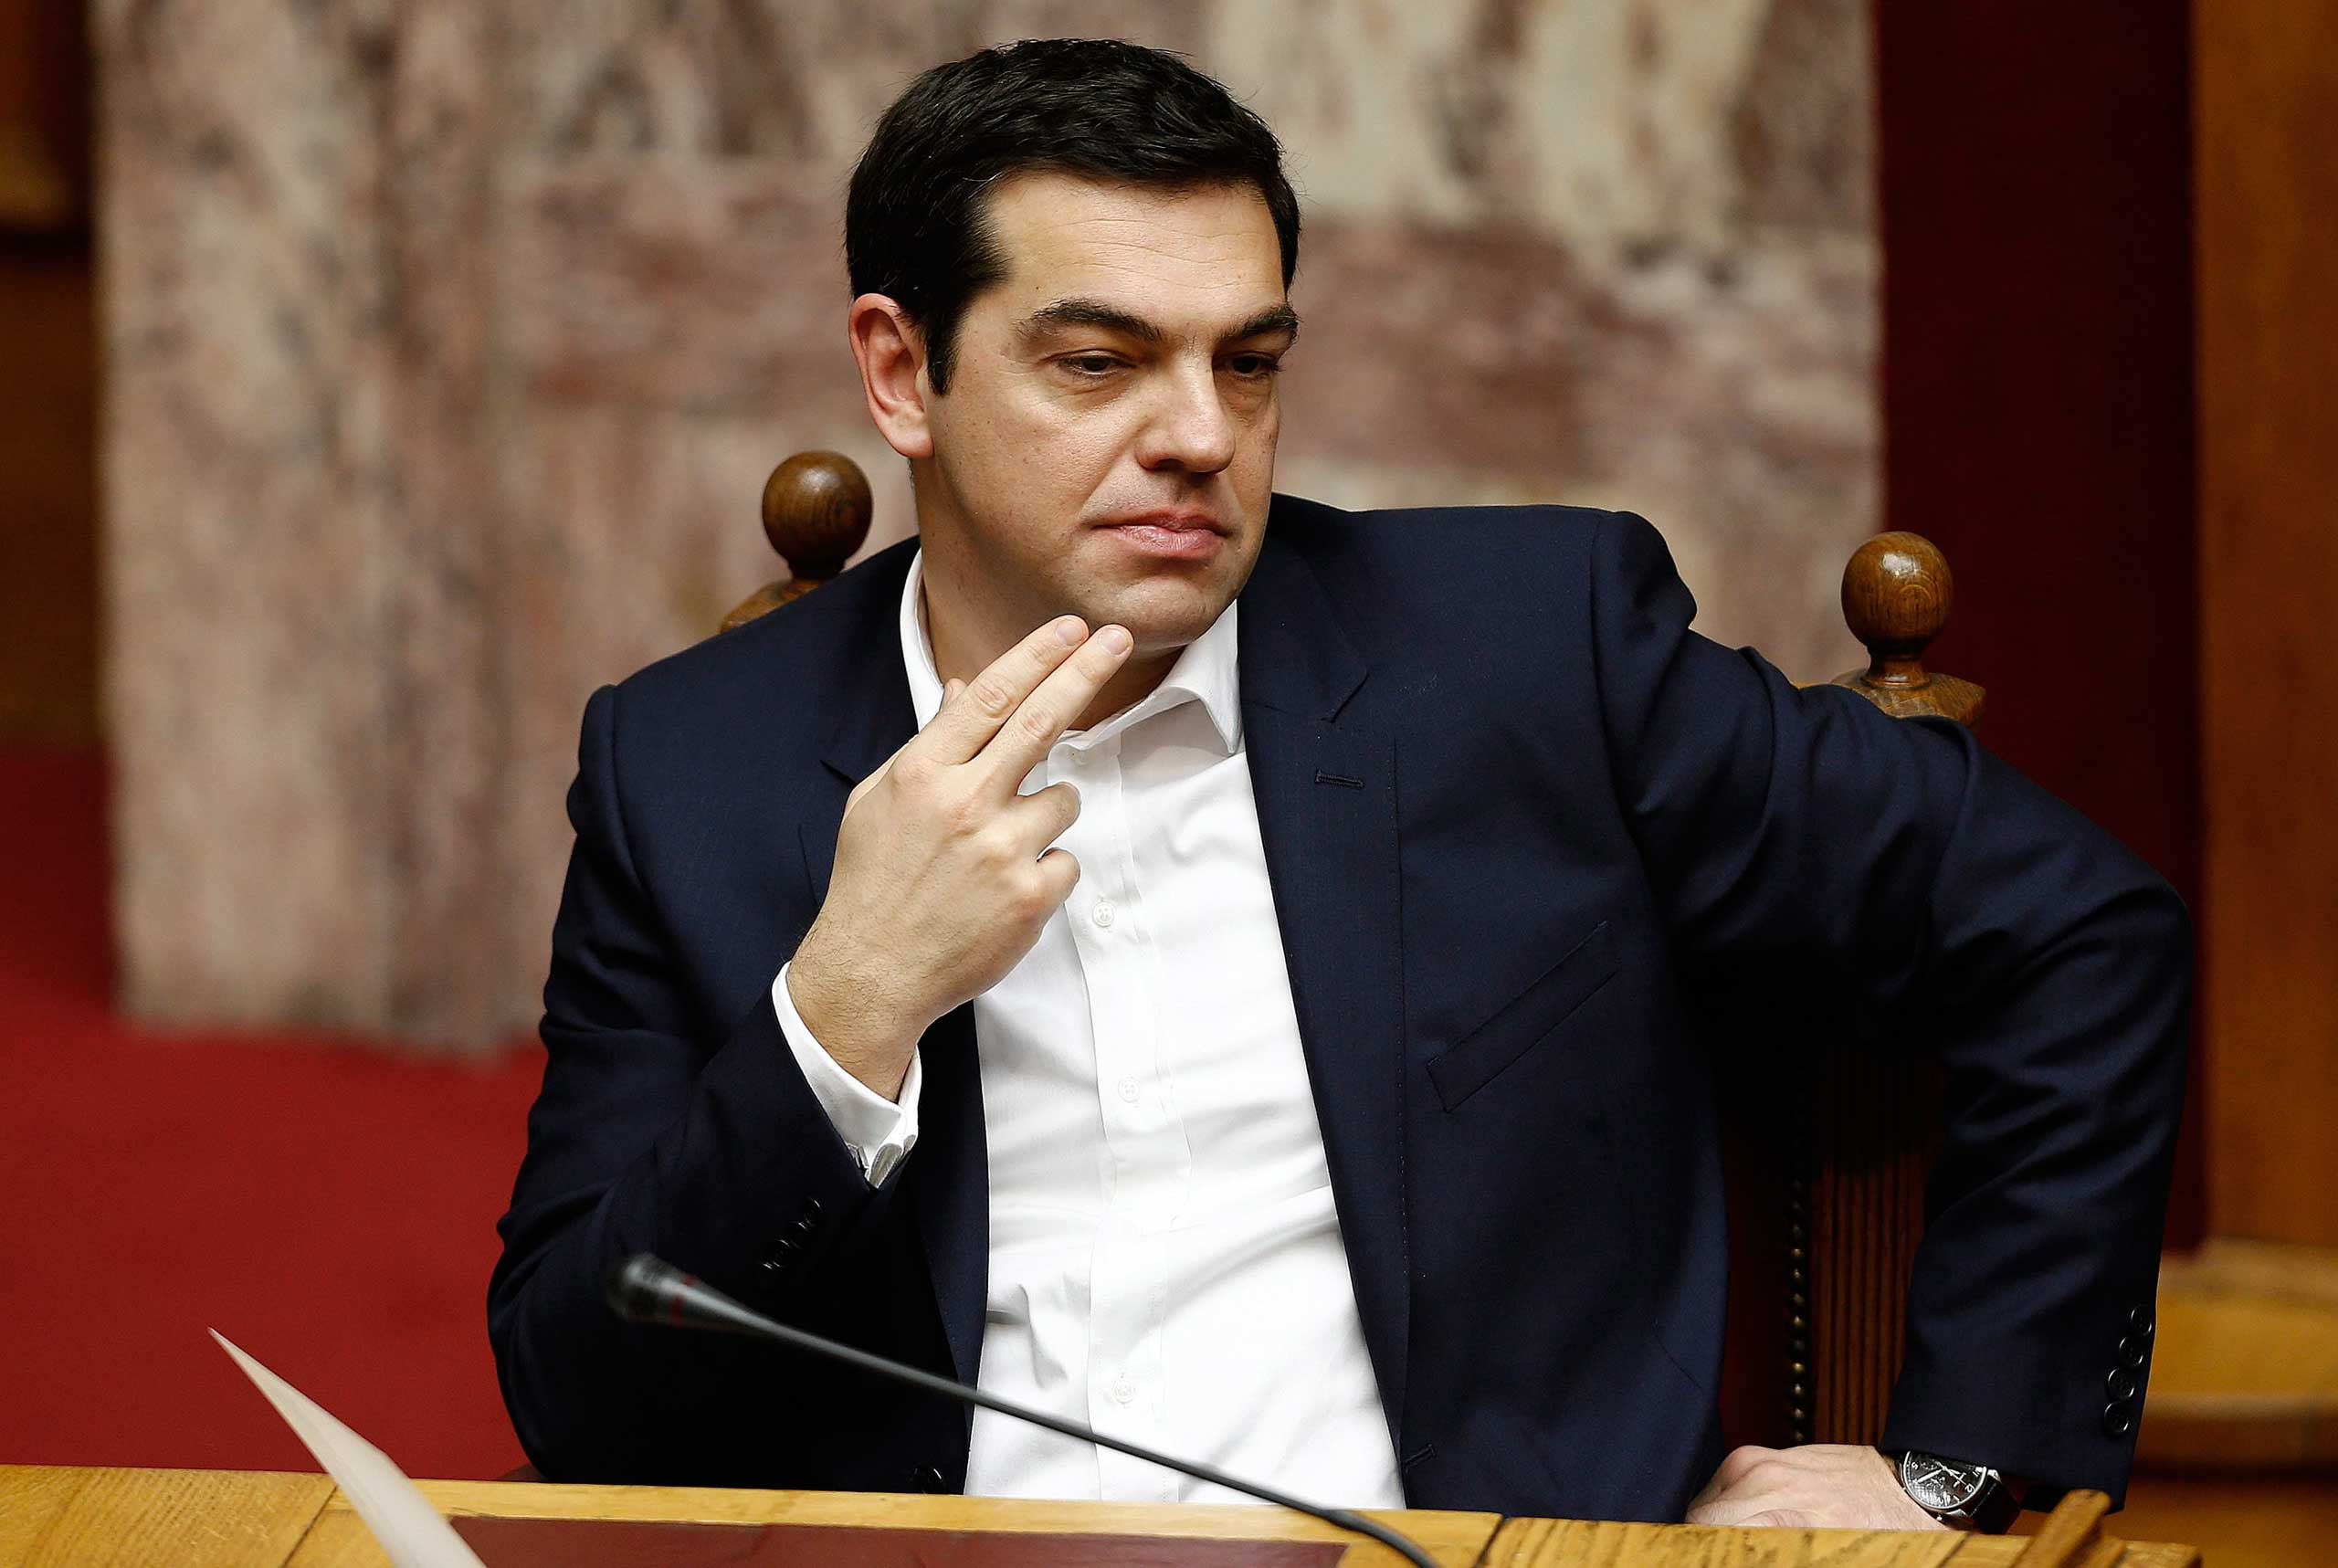 Greek Prime Minister Alexis Tsipras in Athens, Feb. 5,2015.